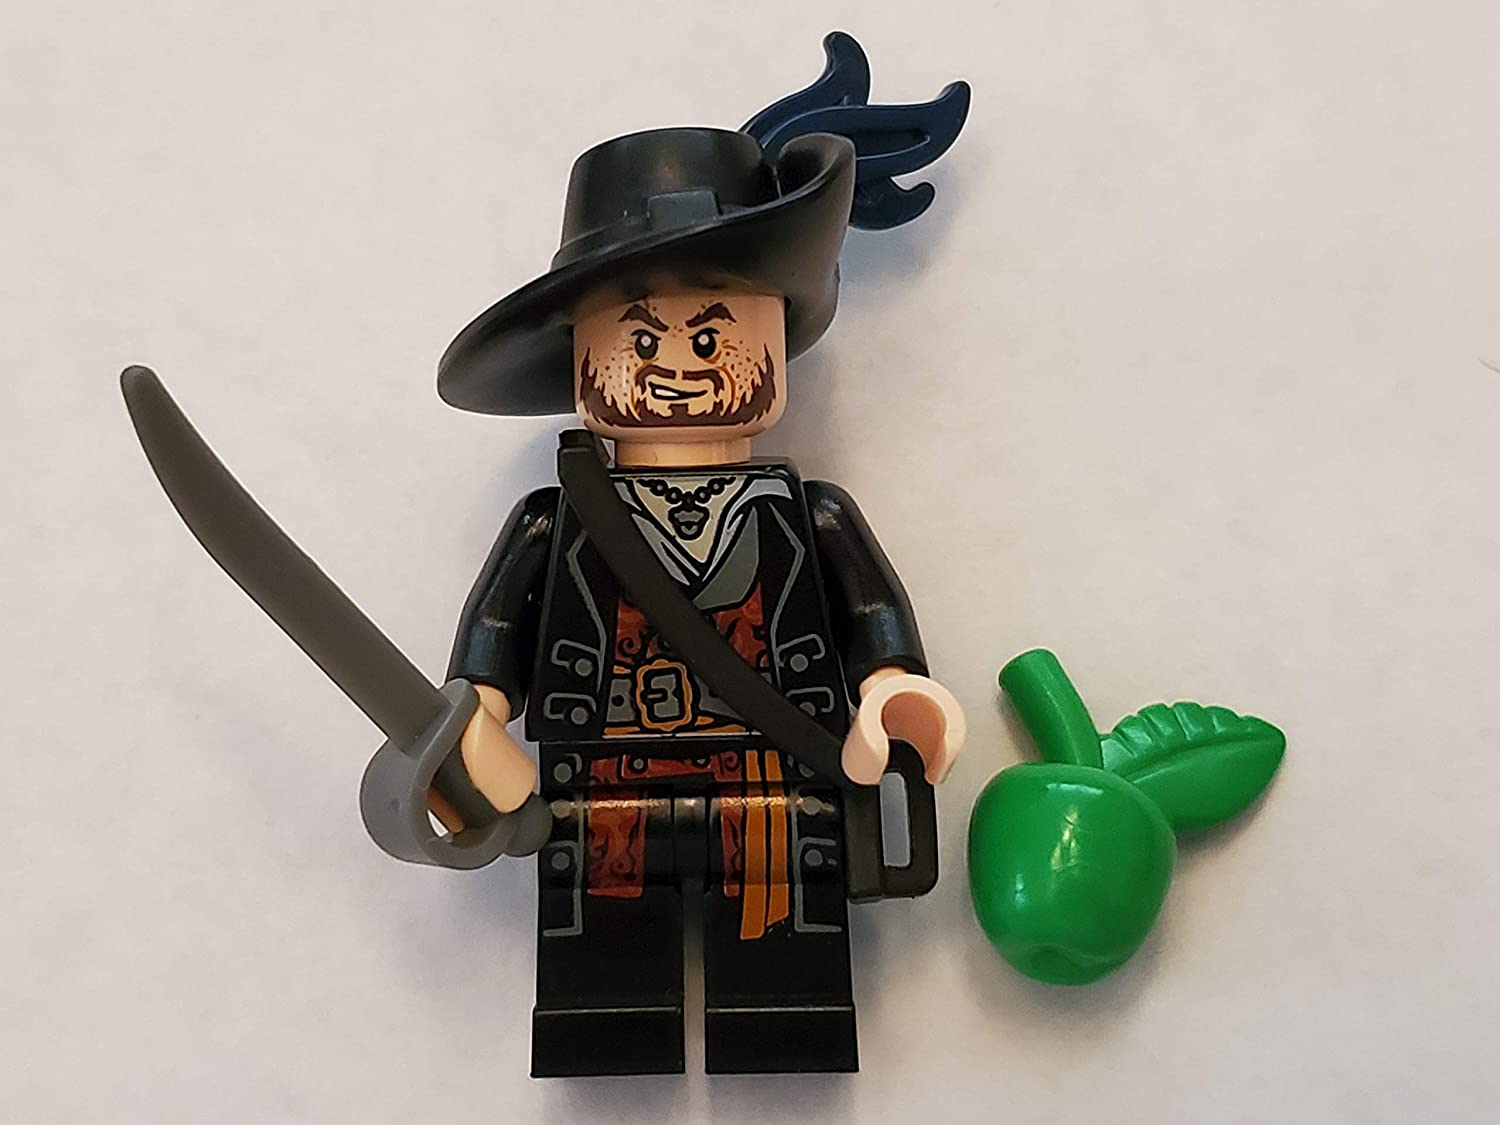 Lego Pirates of the Caribbean - Minifigure Hector Barbossa x1 Loose